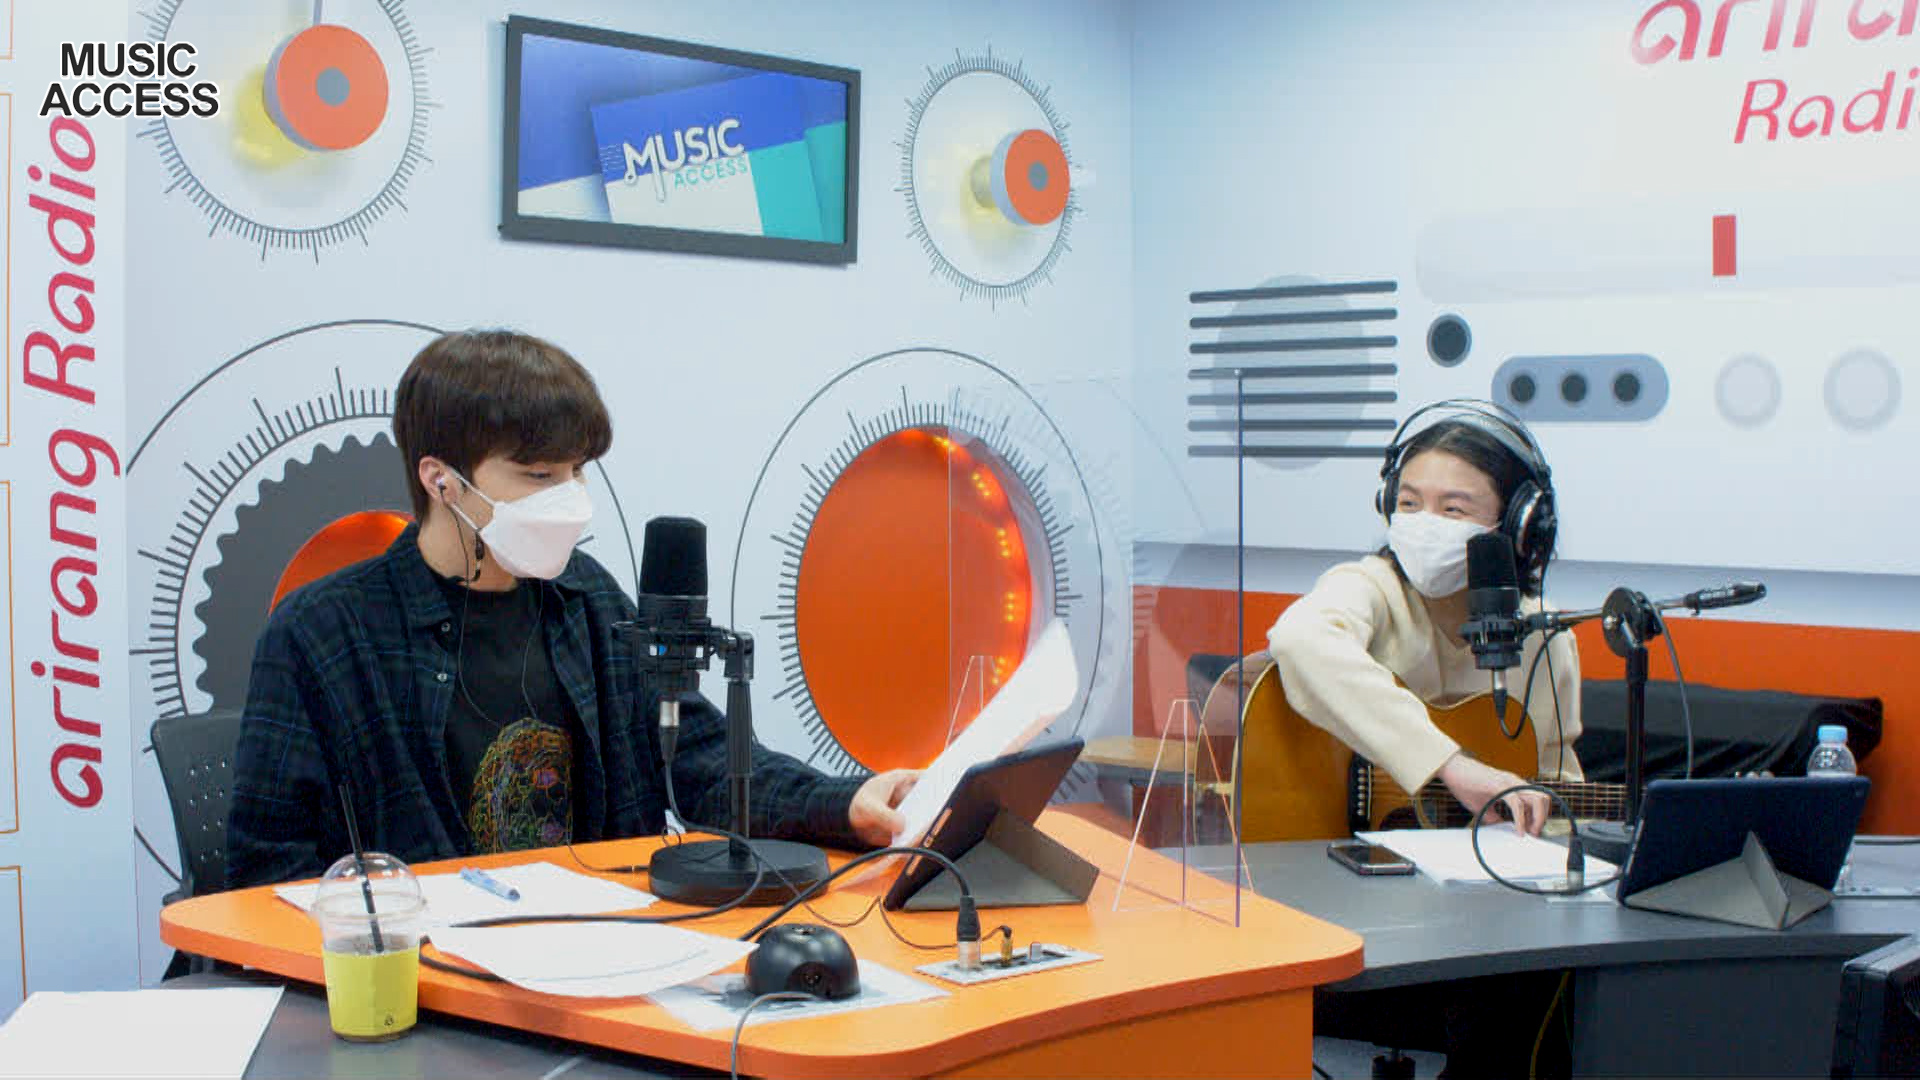 [Music Access] YU SEUNGWOO (유승우)'s Full Episode on Arirang Radio!